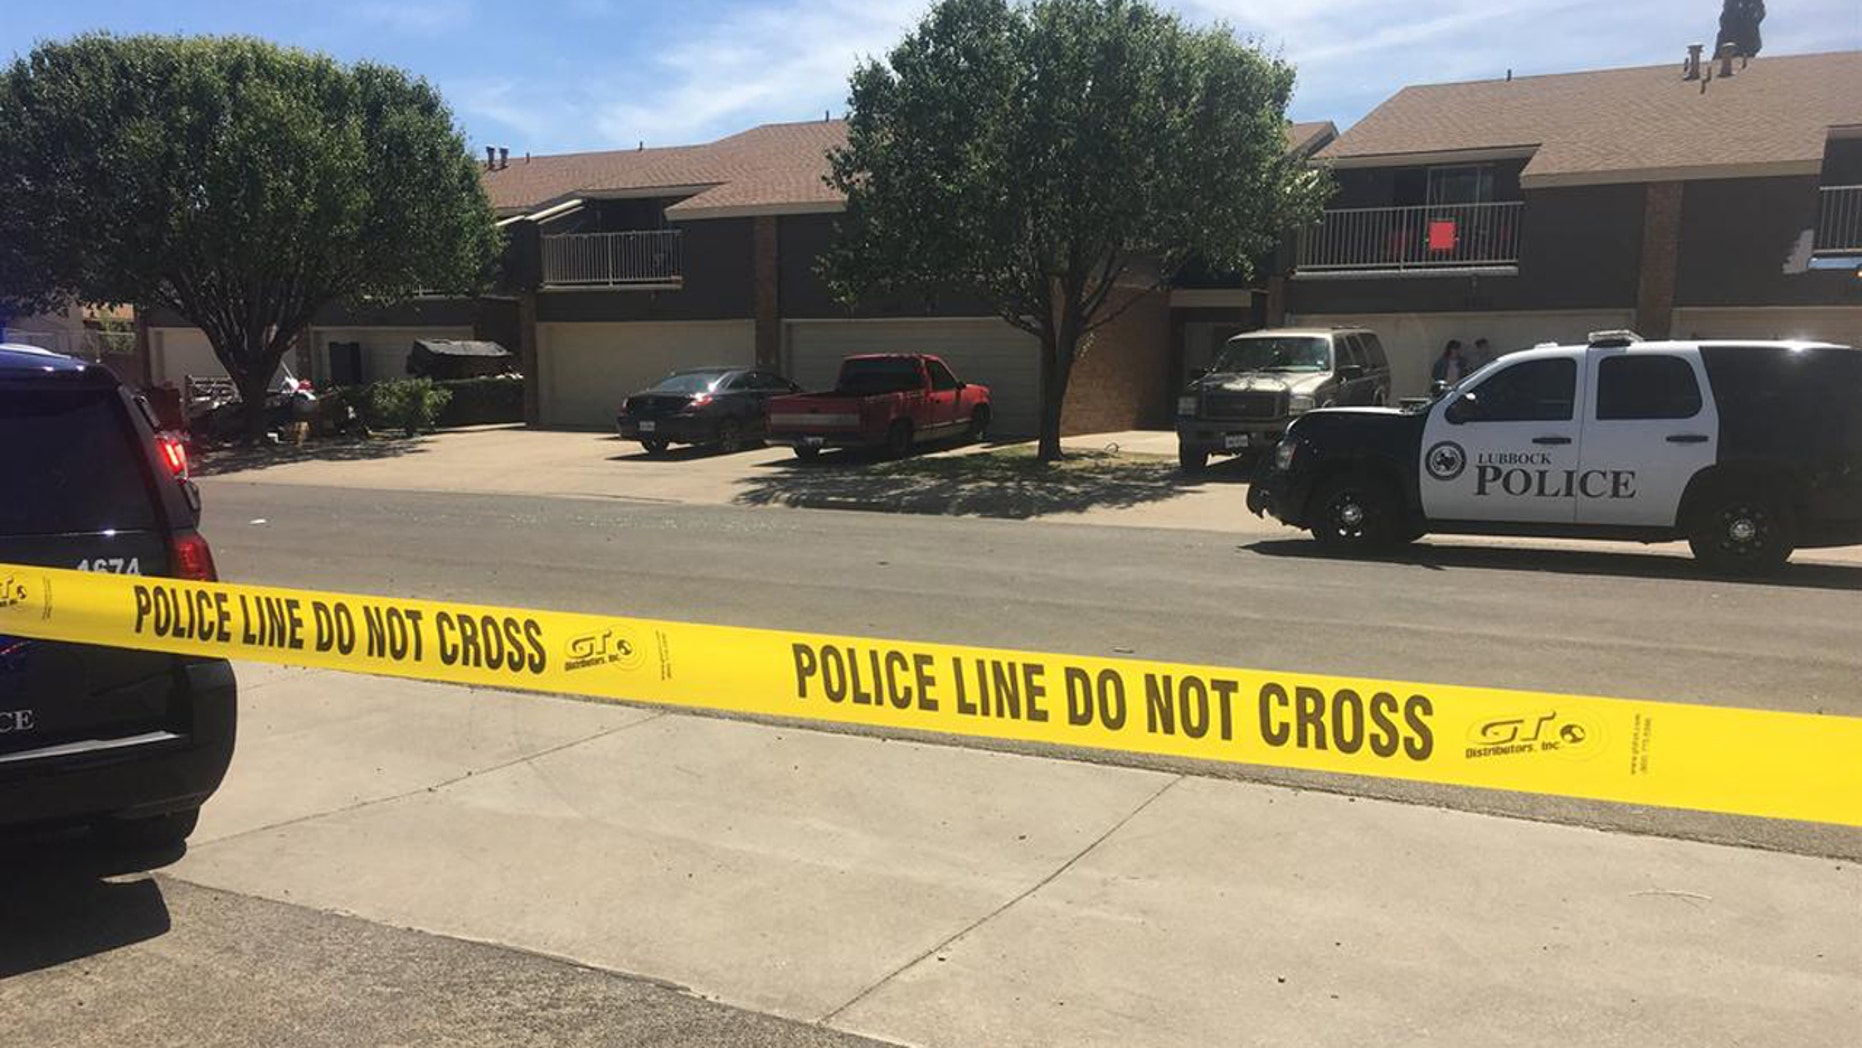 Law enforcement in Lubbock are actively searching for a suspect accused of injuring three officers responding to a domestic disturbance